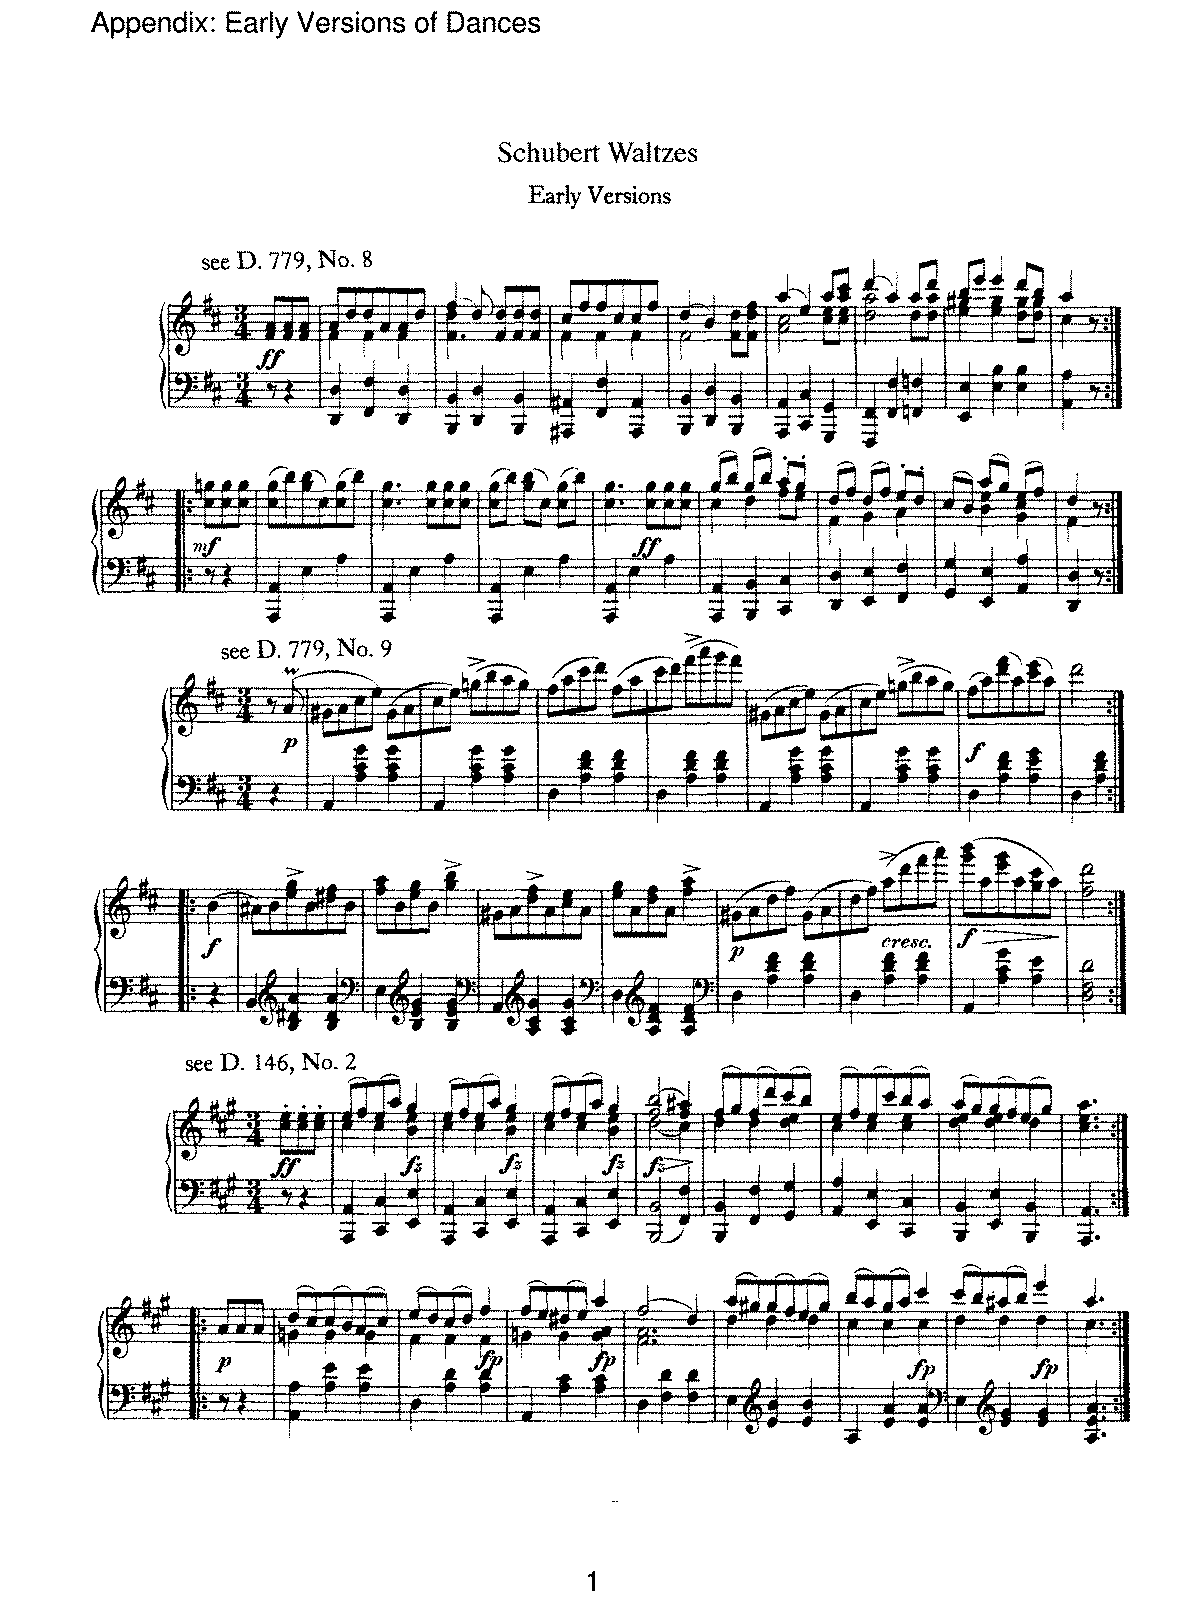 Schubert - Early versions of dances.pdf